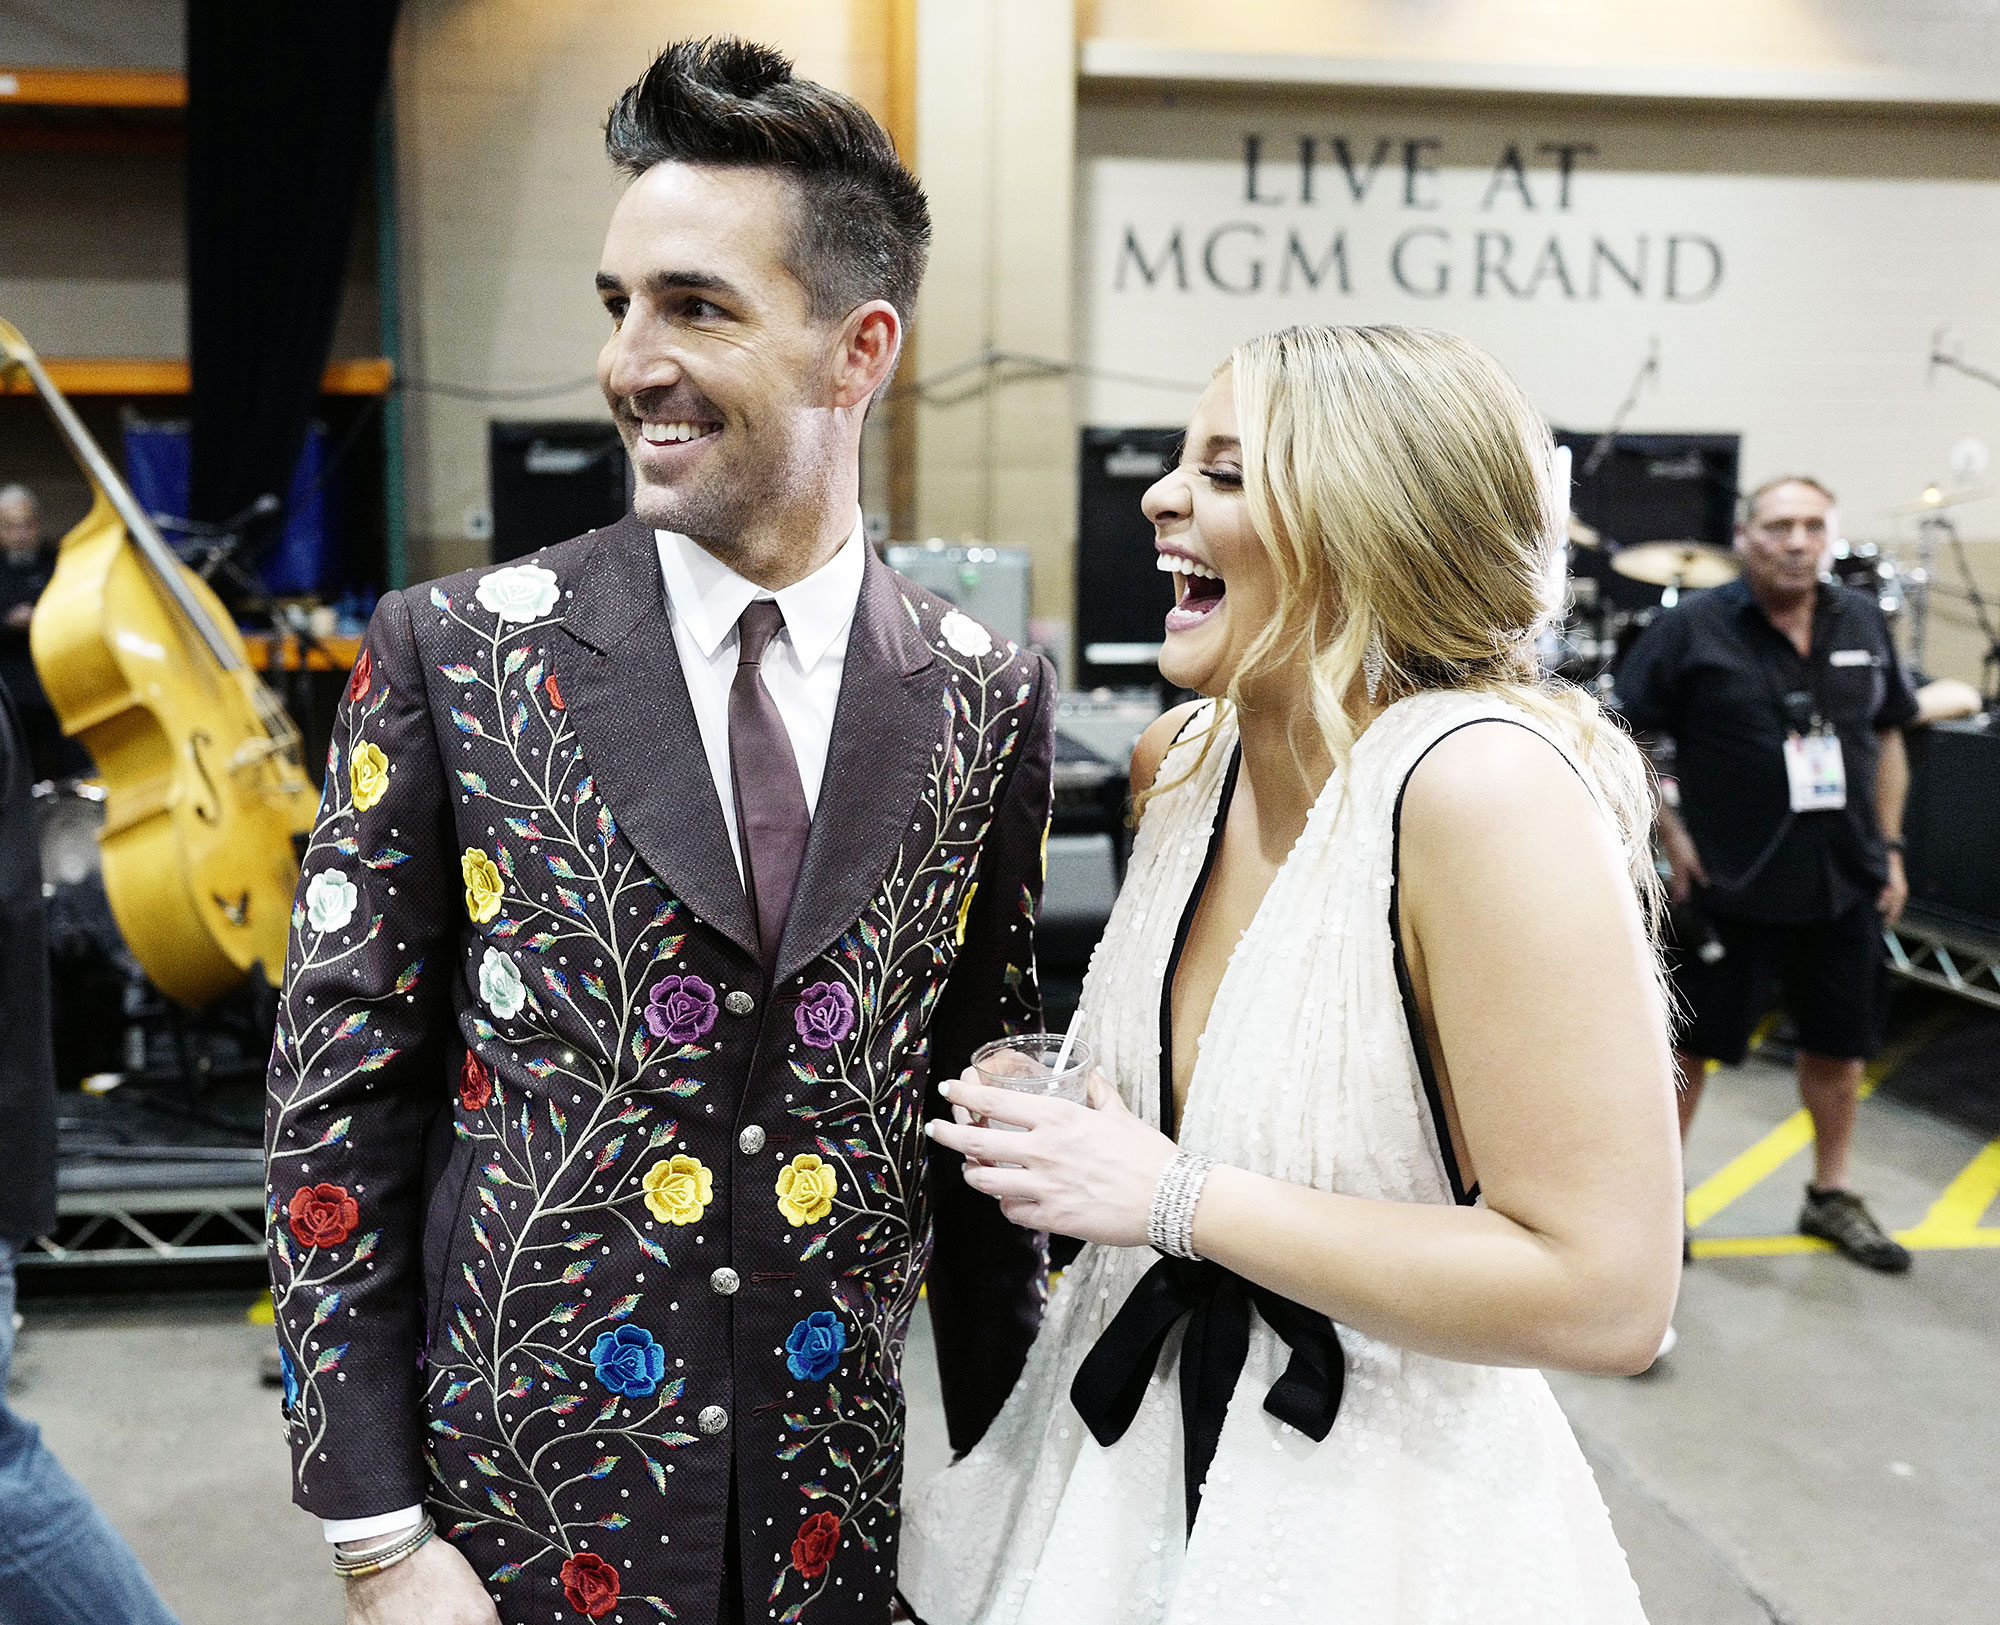 Inside ACM Awards 2019 Jake Owen Lauren Alaina - Jake Owen and Lauren Alaina let loose as they hung out backstage.